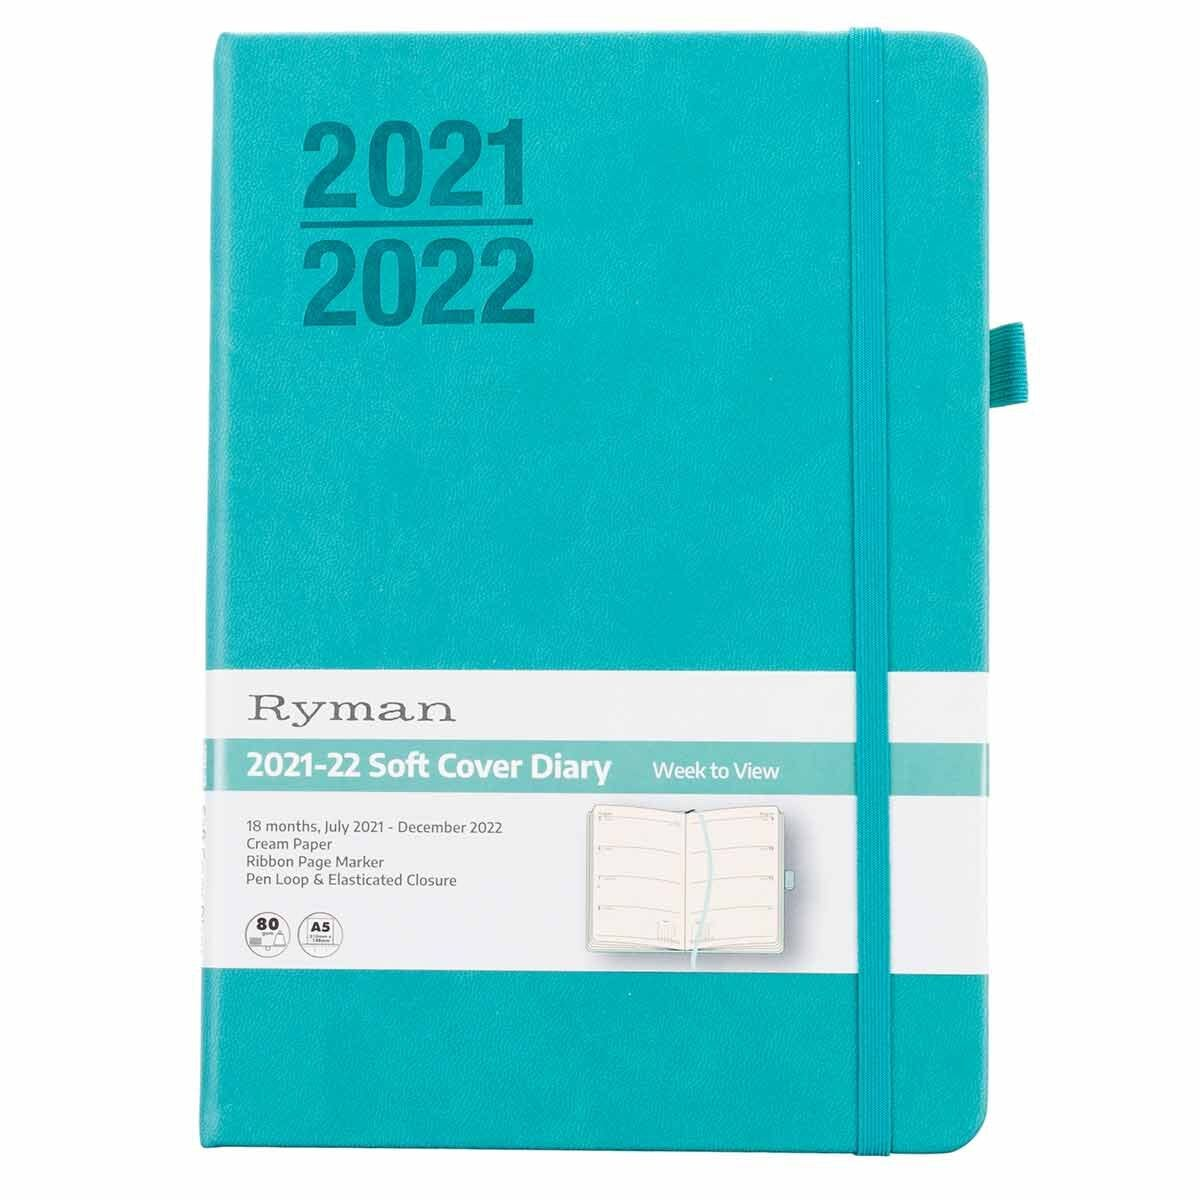 Ryman Soft Cover Mid-Year Diary Week to View A5 2021-2022 Mint